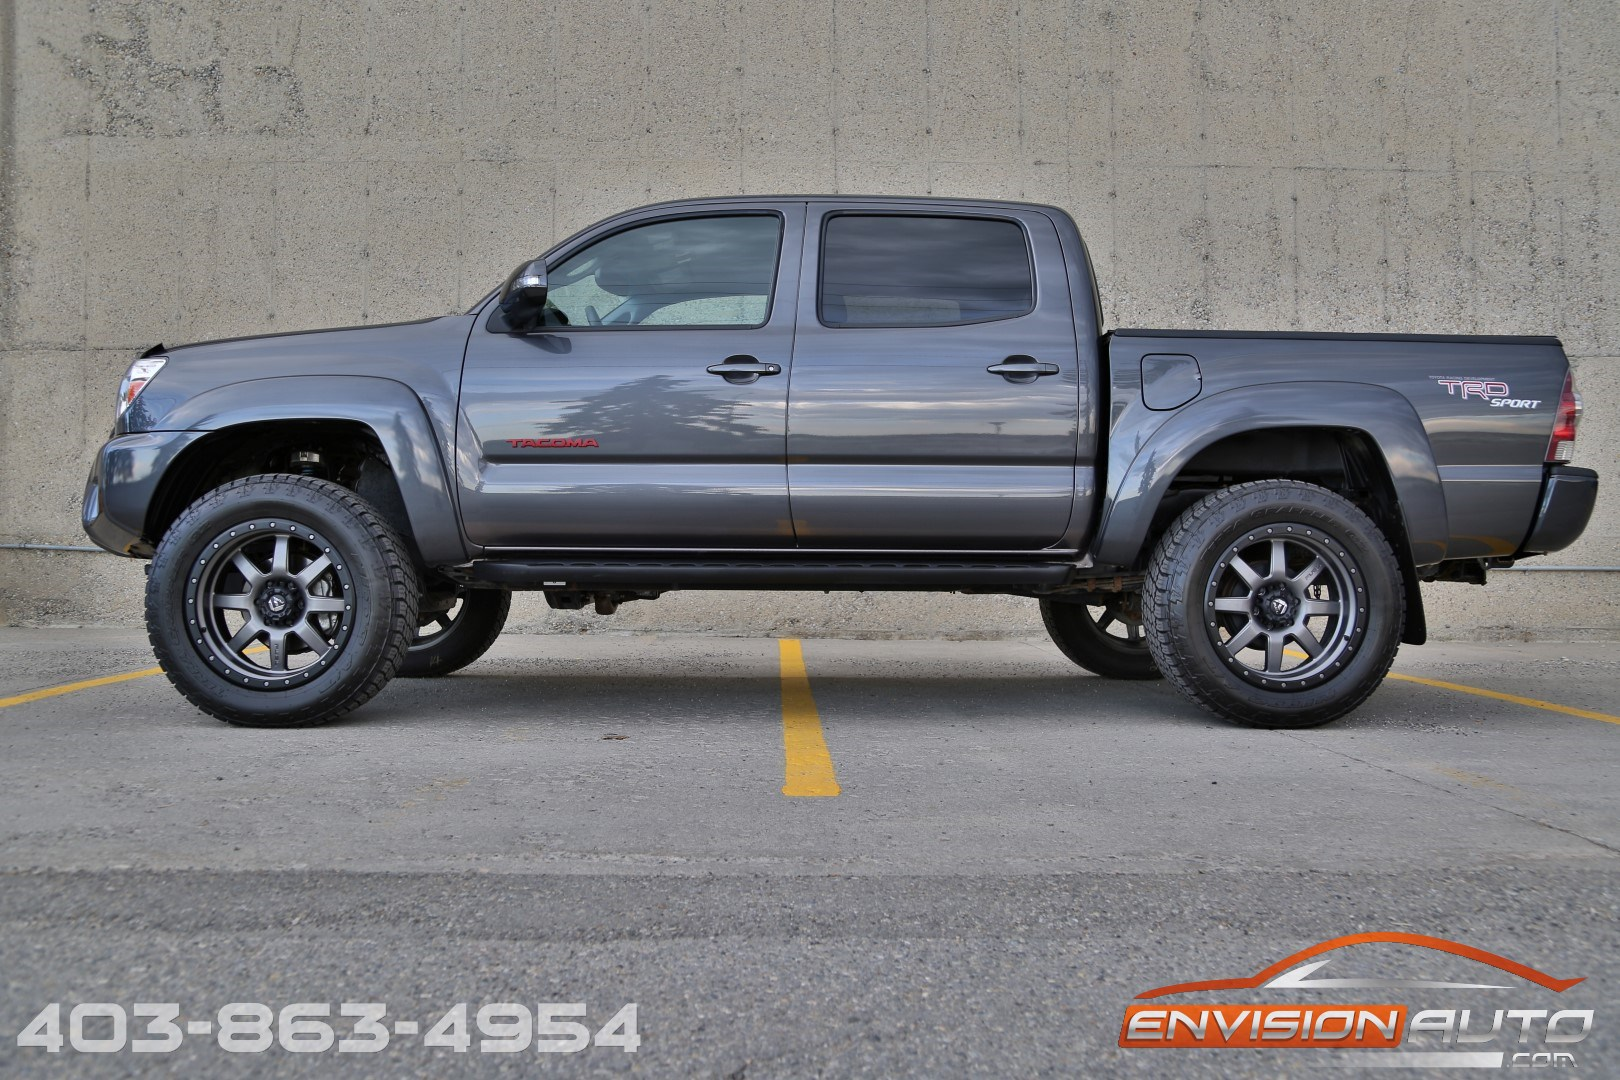 2008 Toyota Tacoma 4x4 >> 2012 Toyota Tacoma Double Cab TRD Sport 4×4 – Lifted – 20in Fuel Wheels - Envision Auto